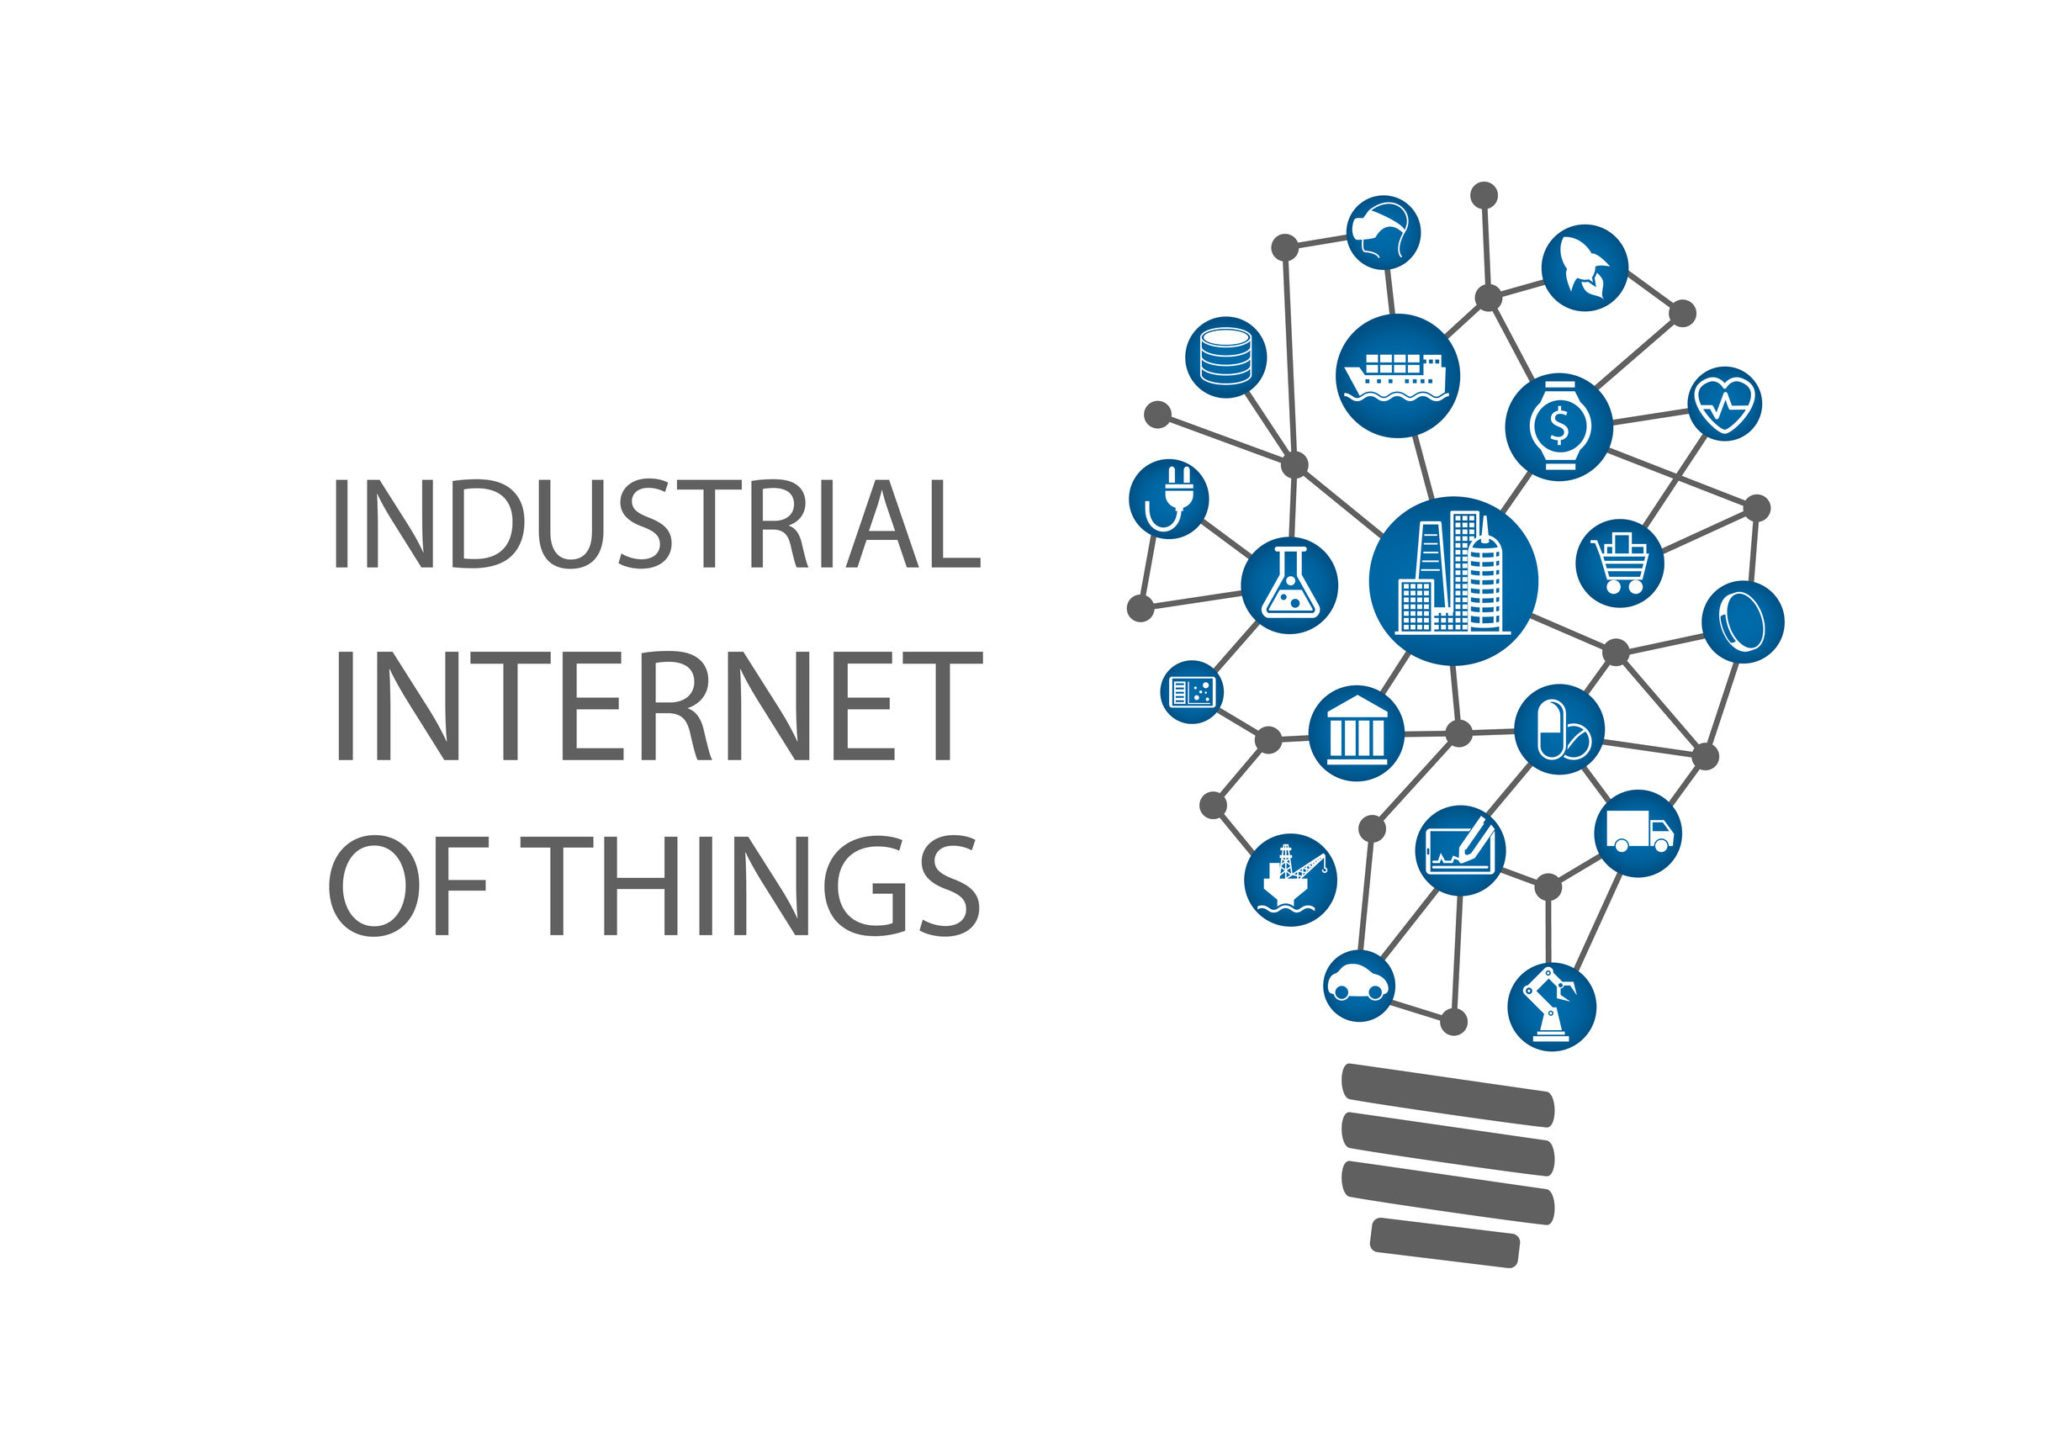 McRock Capital gets funding for Industrial IoT initiatives